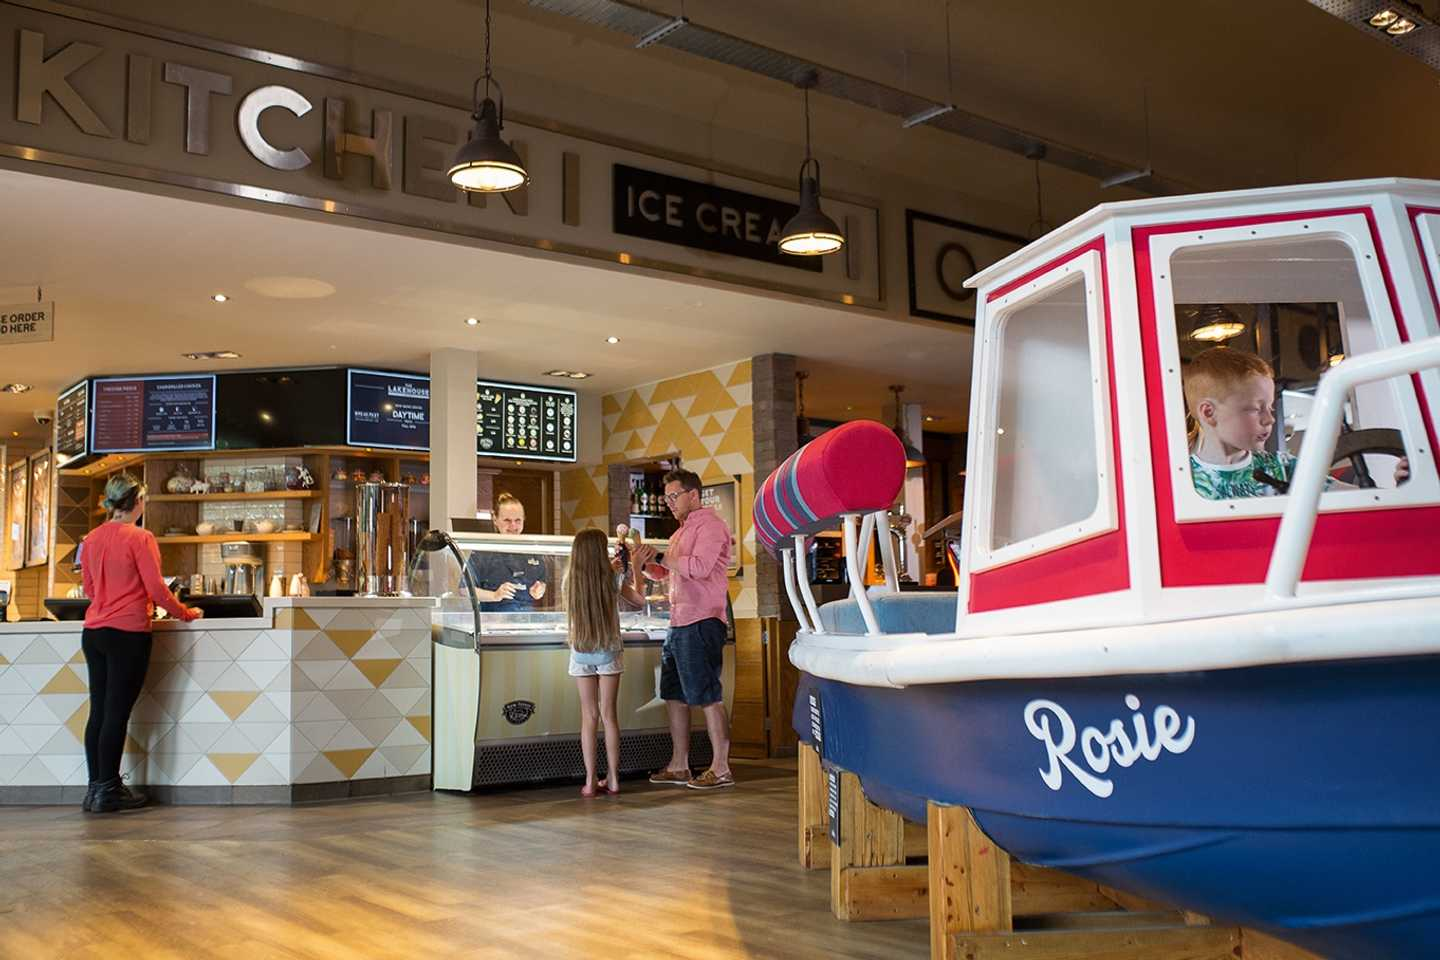 Guests getting ice-cream at The Lakehouse Kitchen and a boy in the boat in The Lakehouse restaurant